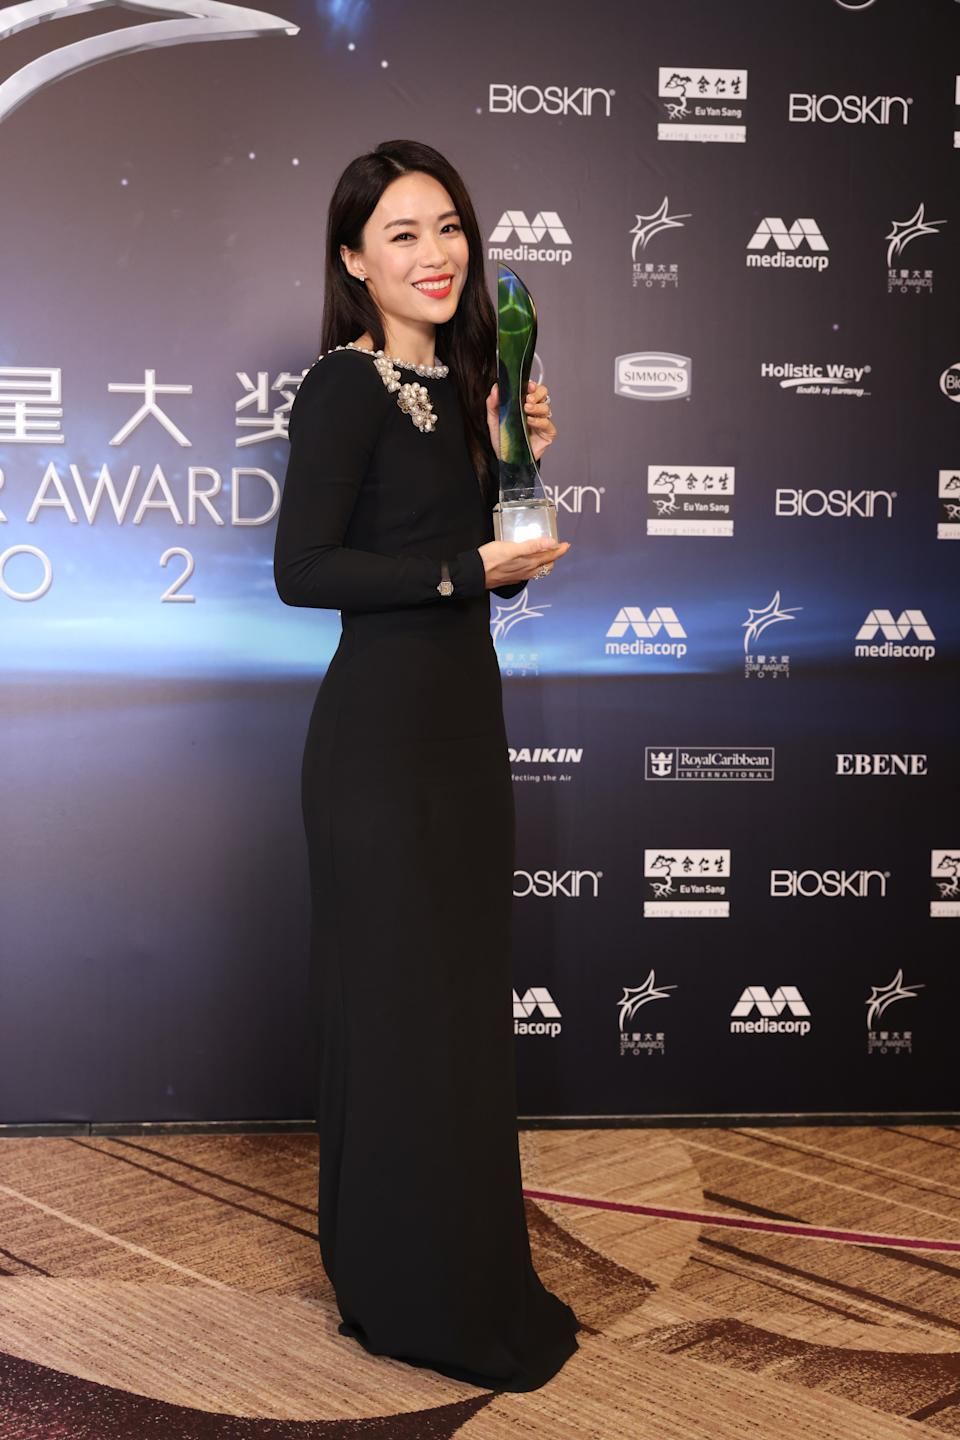 Rebecca Lim at Star Awards held at Changi Airport on 18 April 2021. (Photo: Mediacorp)